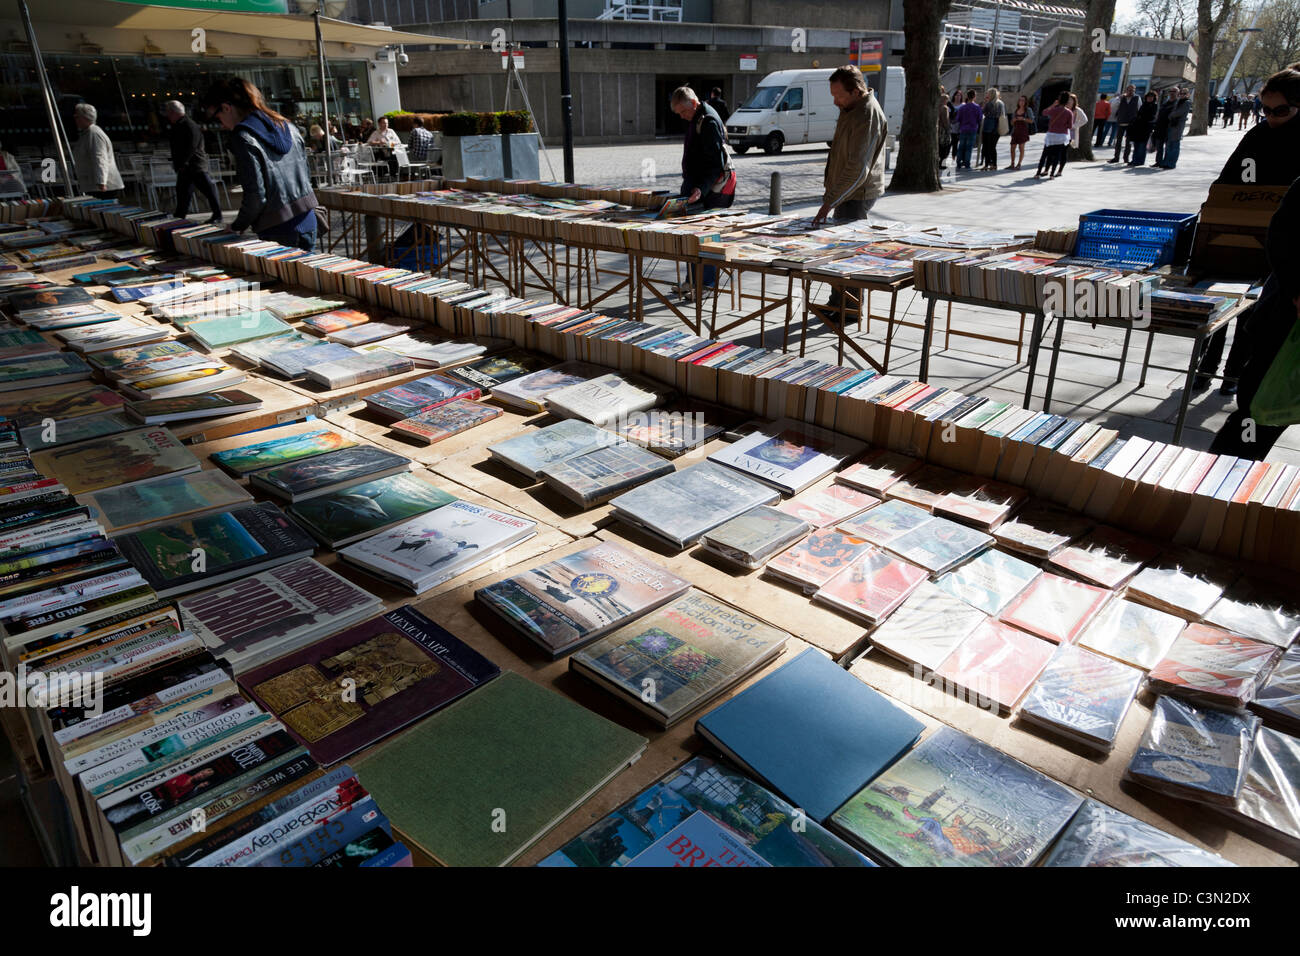 Shoppers peruse a display of books at an open-air book shop on the South bank, London. - Stock Image